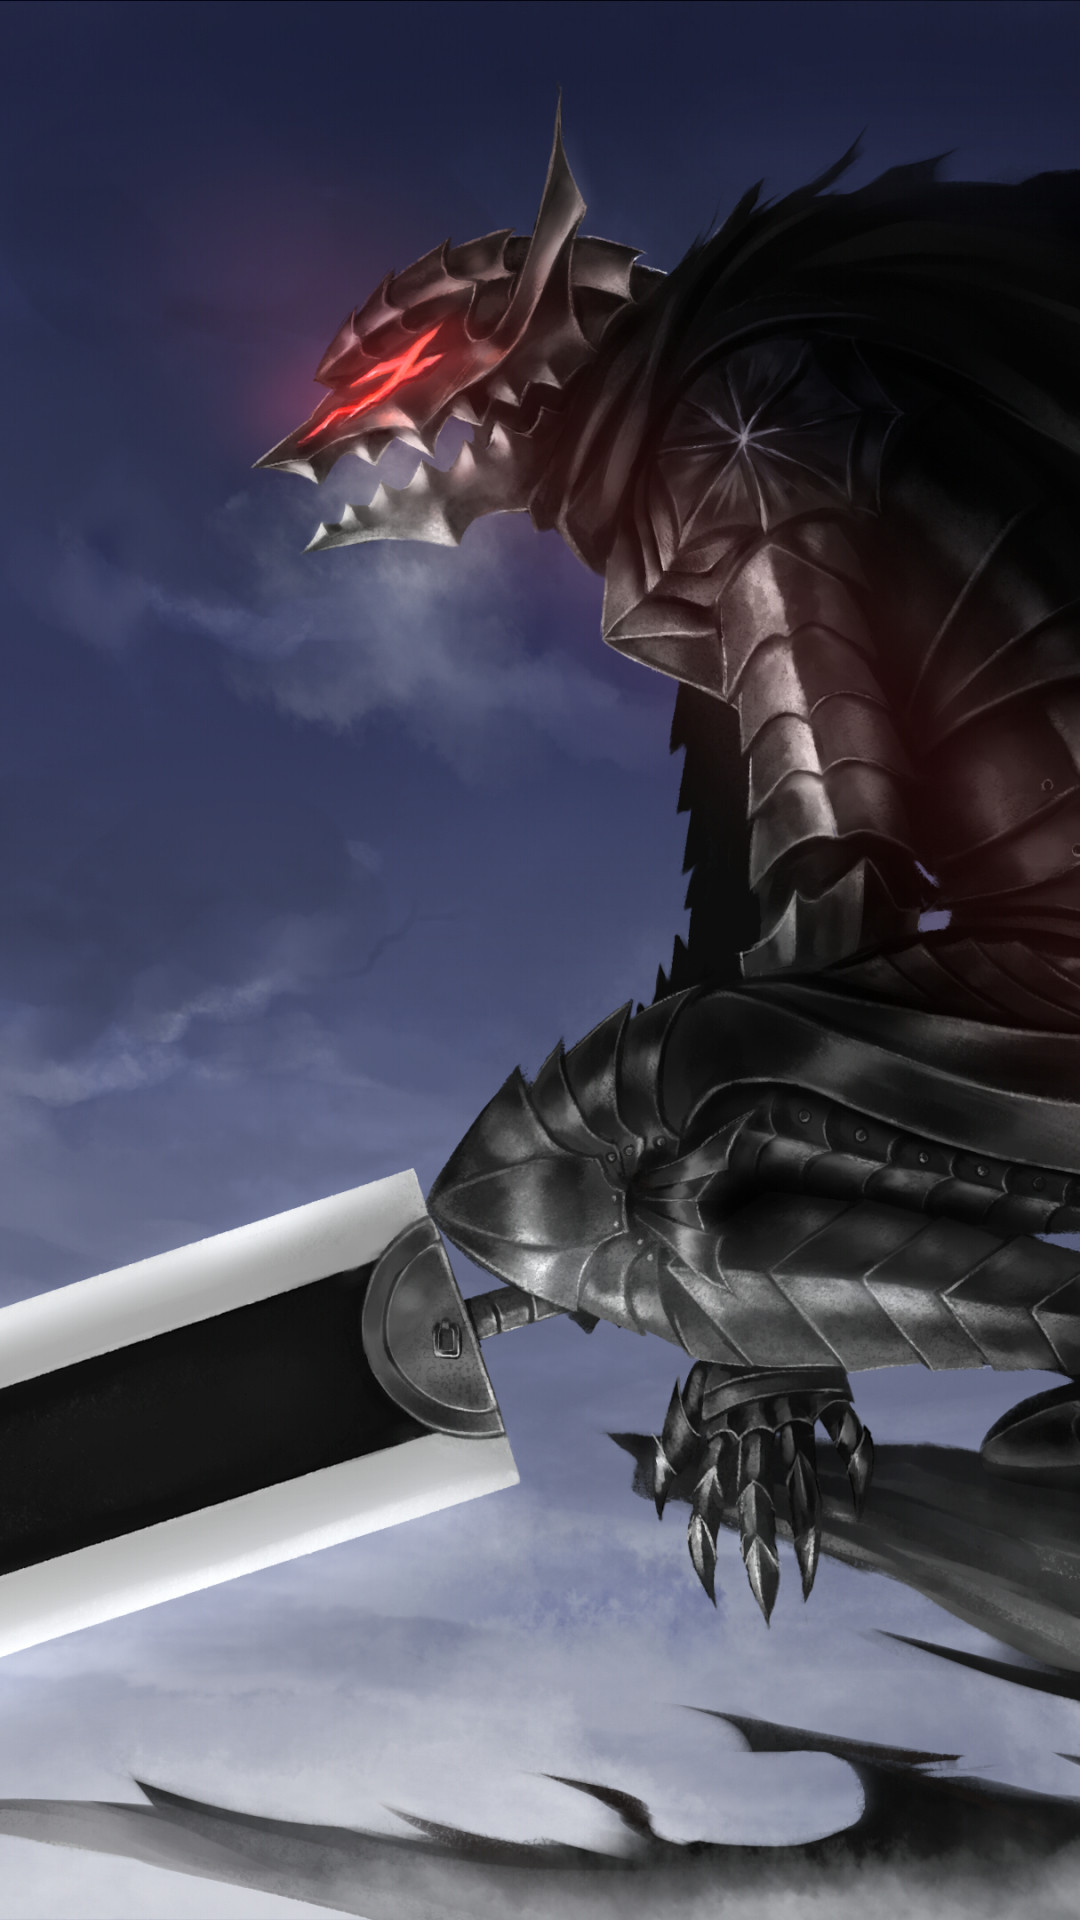 Berserk Phone Wallpaper 64 Images